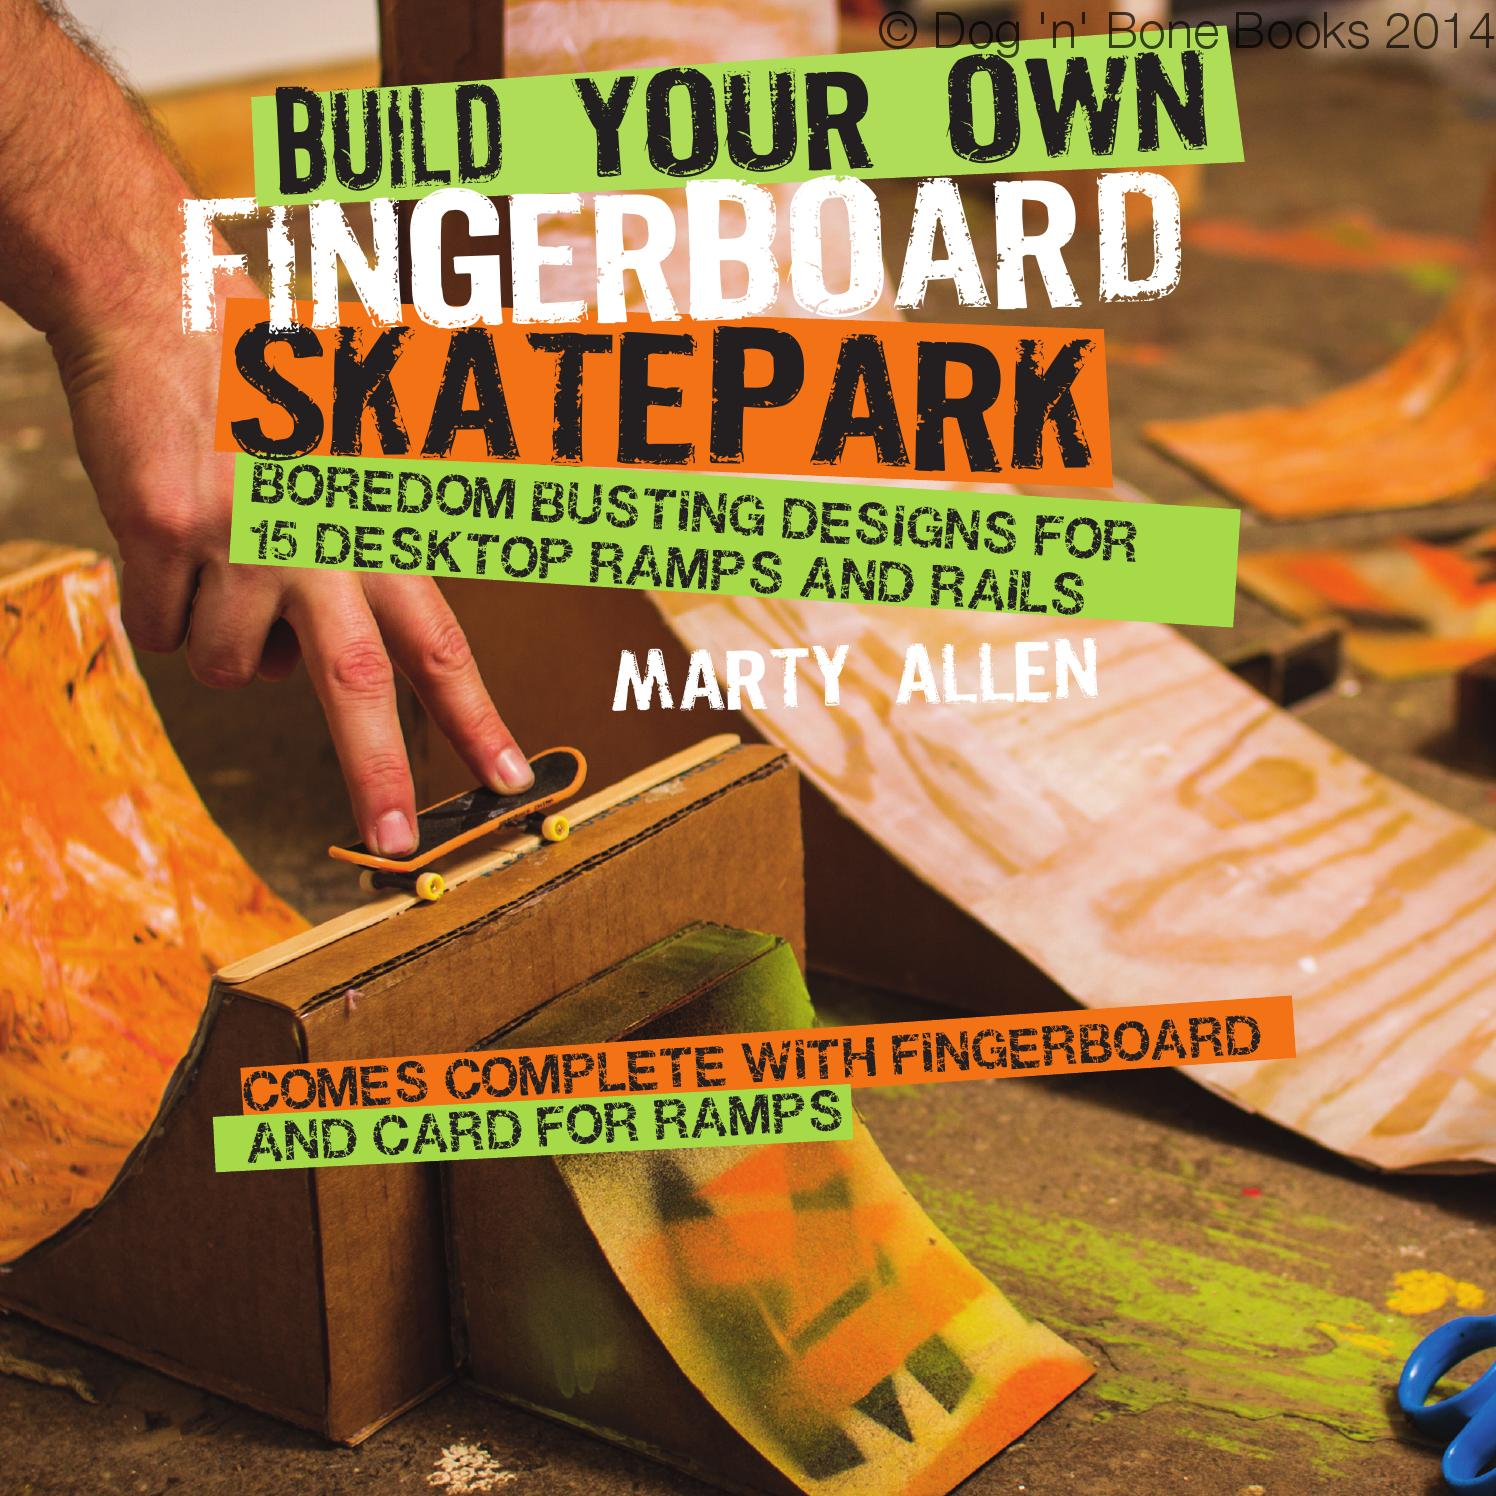 Build Your Own Fingerboard Skatepark By Ryland Peters Small And